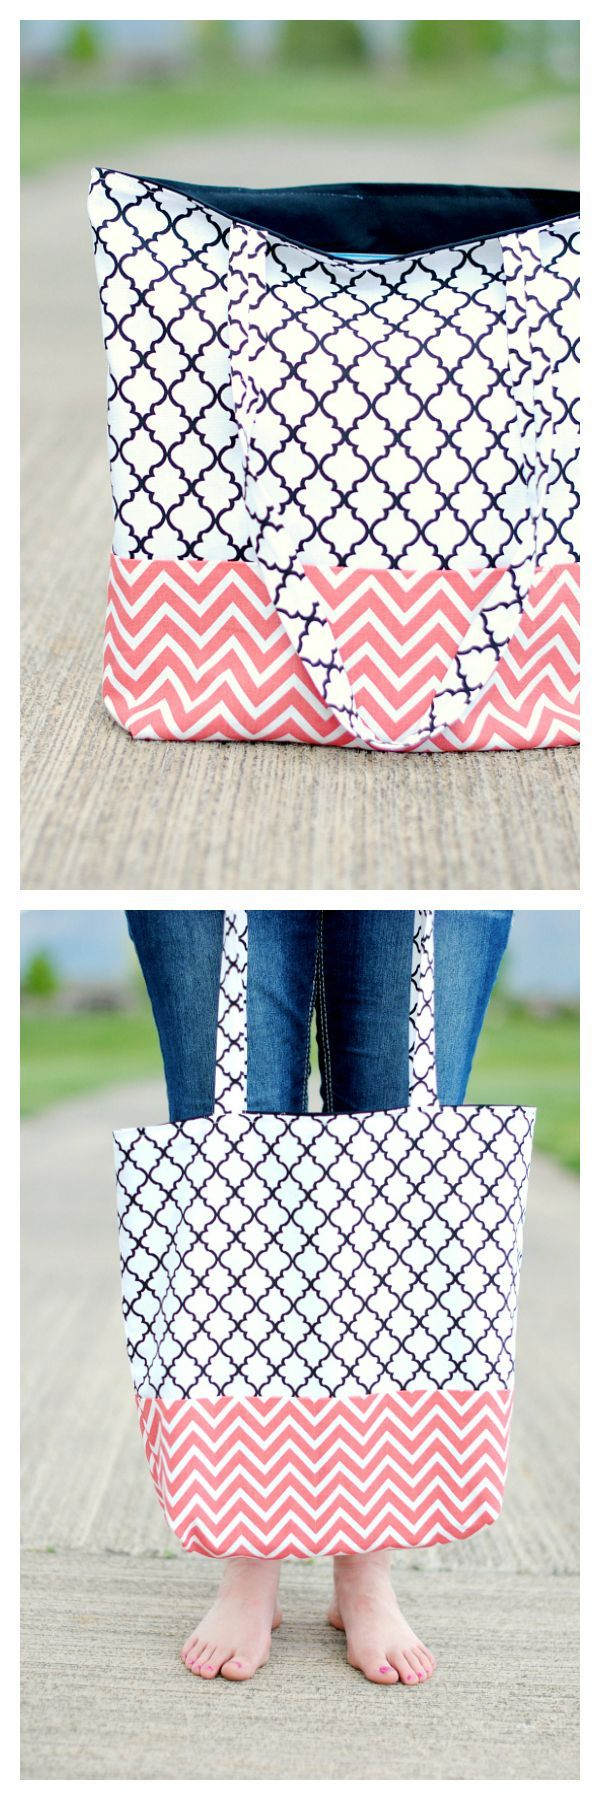 How to Make a Bag: Tote Bag Pattern and Tutorial | Nähen, Kleidung ...